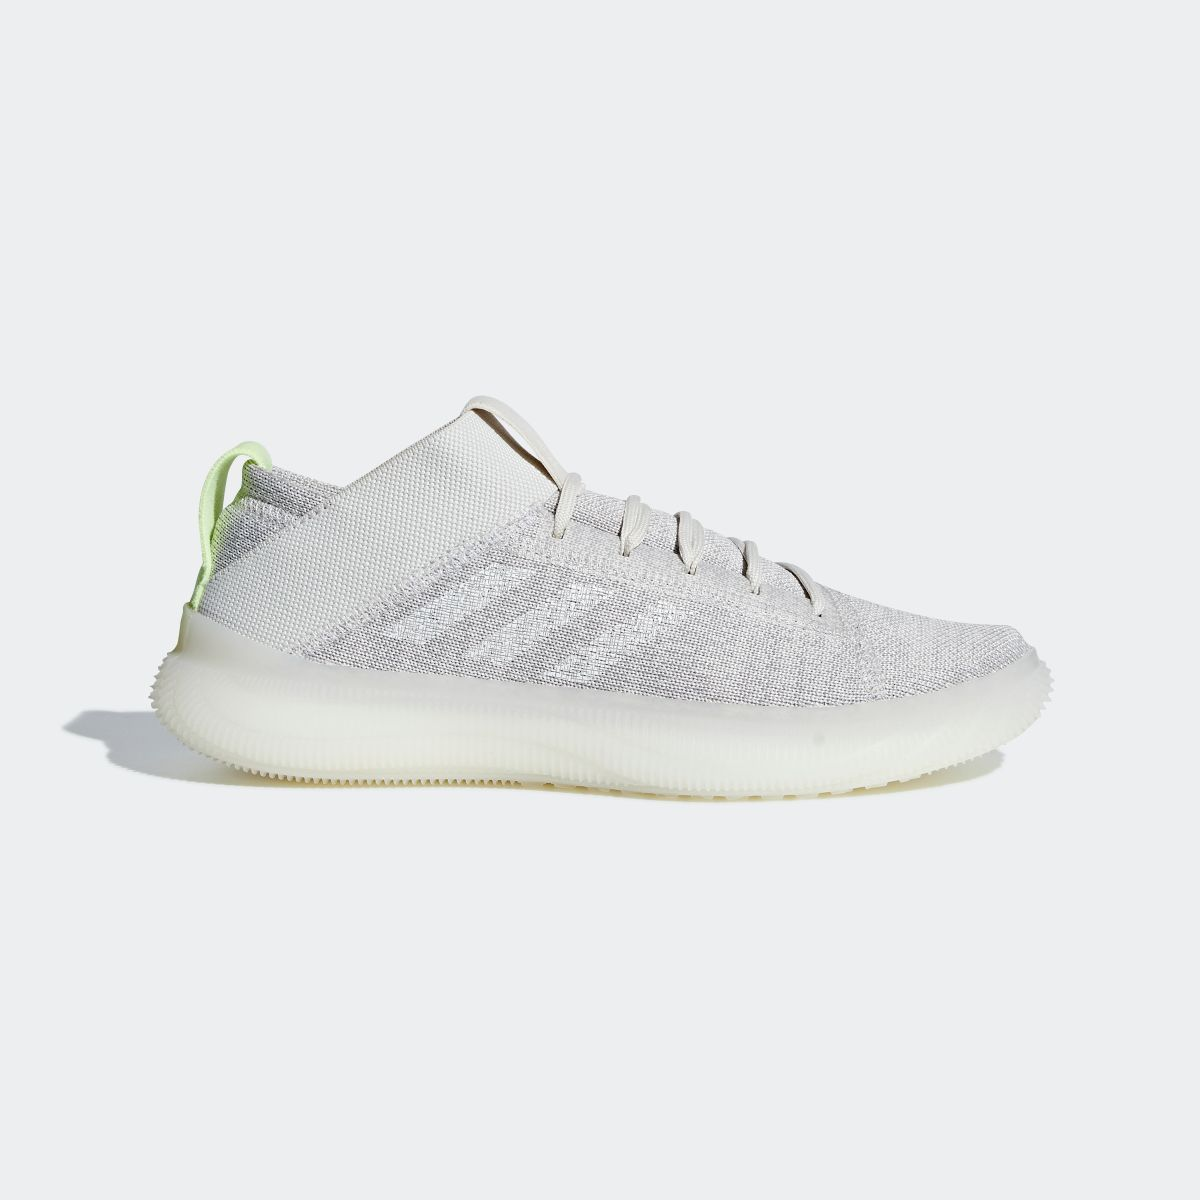 All articles point 20 times 0915 17:00 0920 16:59 Adidas adidas pure boost trainer W PUREBOOST TRAINER W Lady's gym training shoes sports shoes